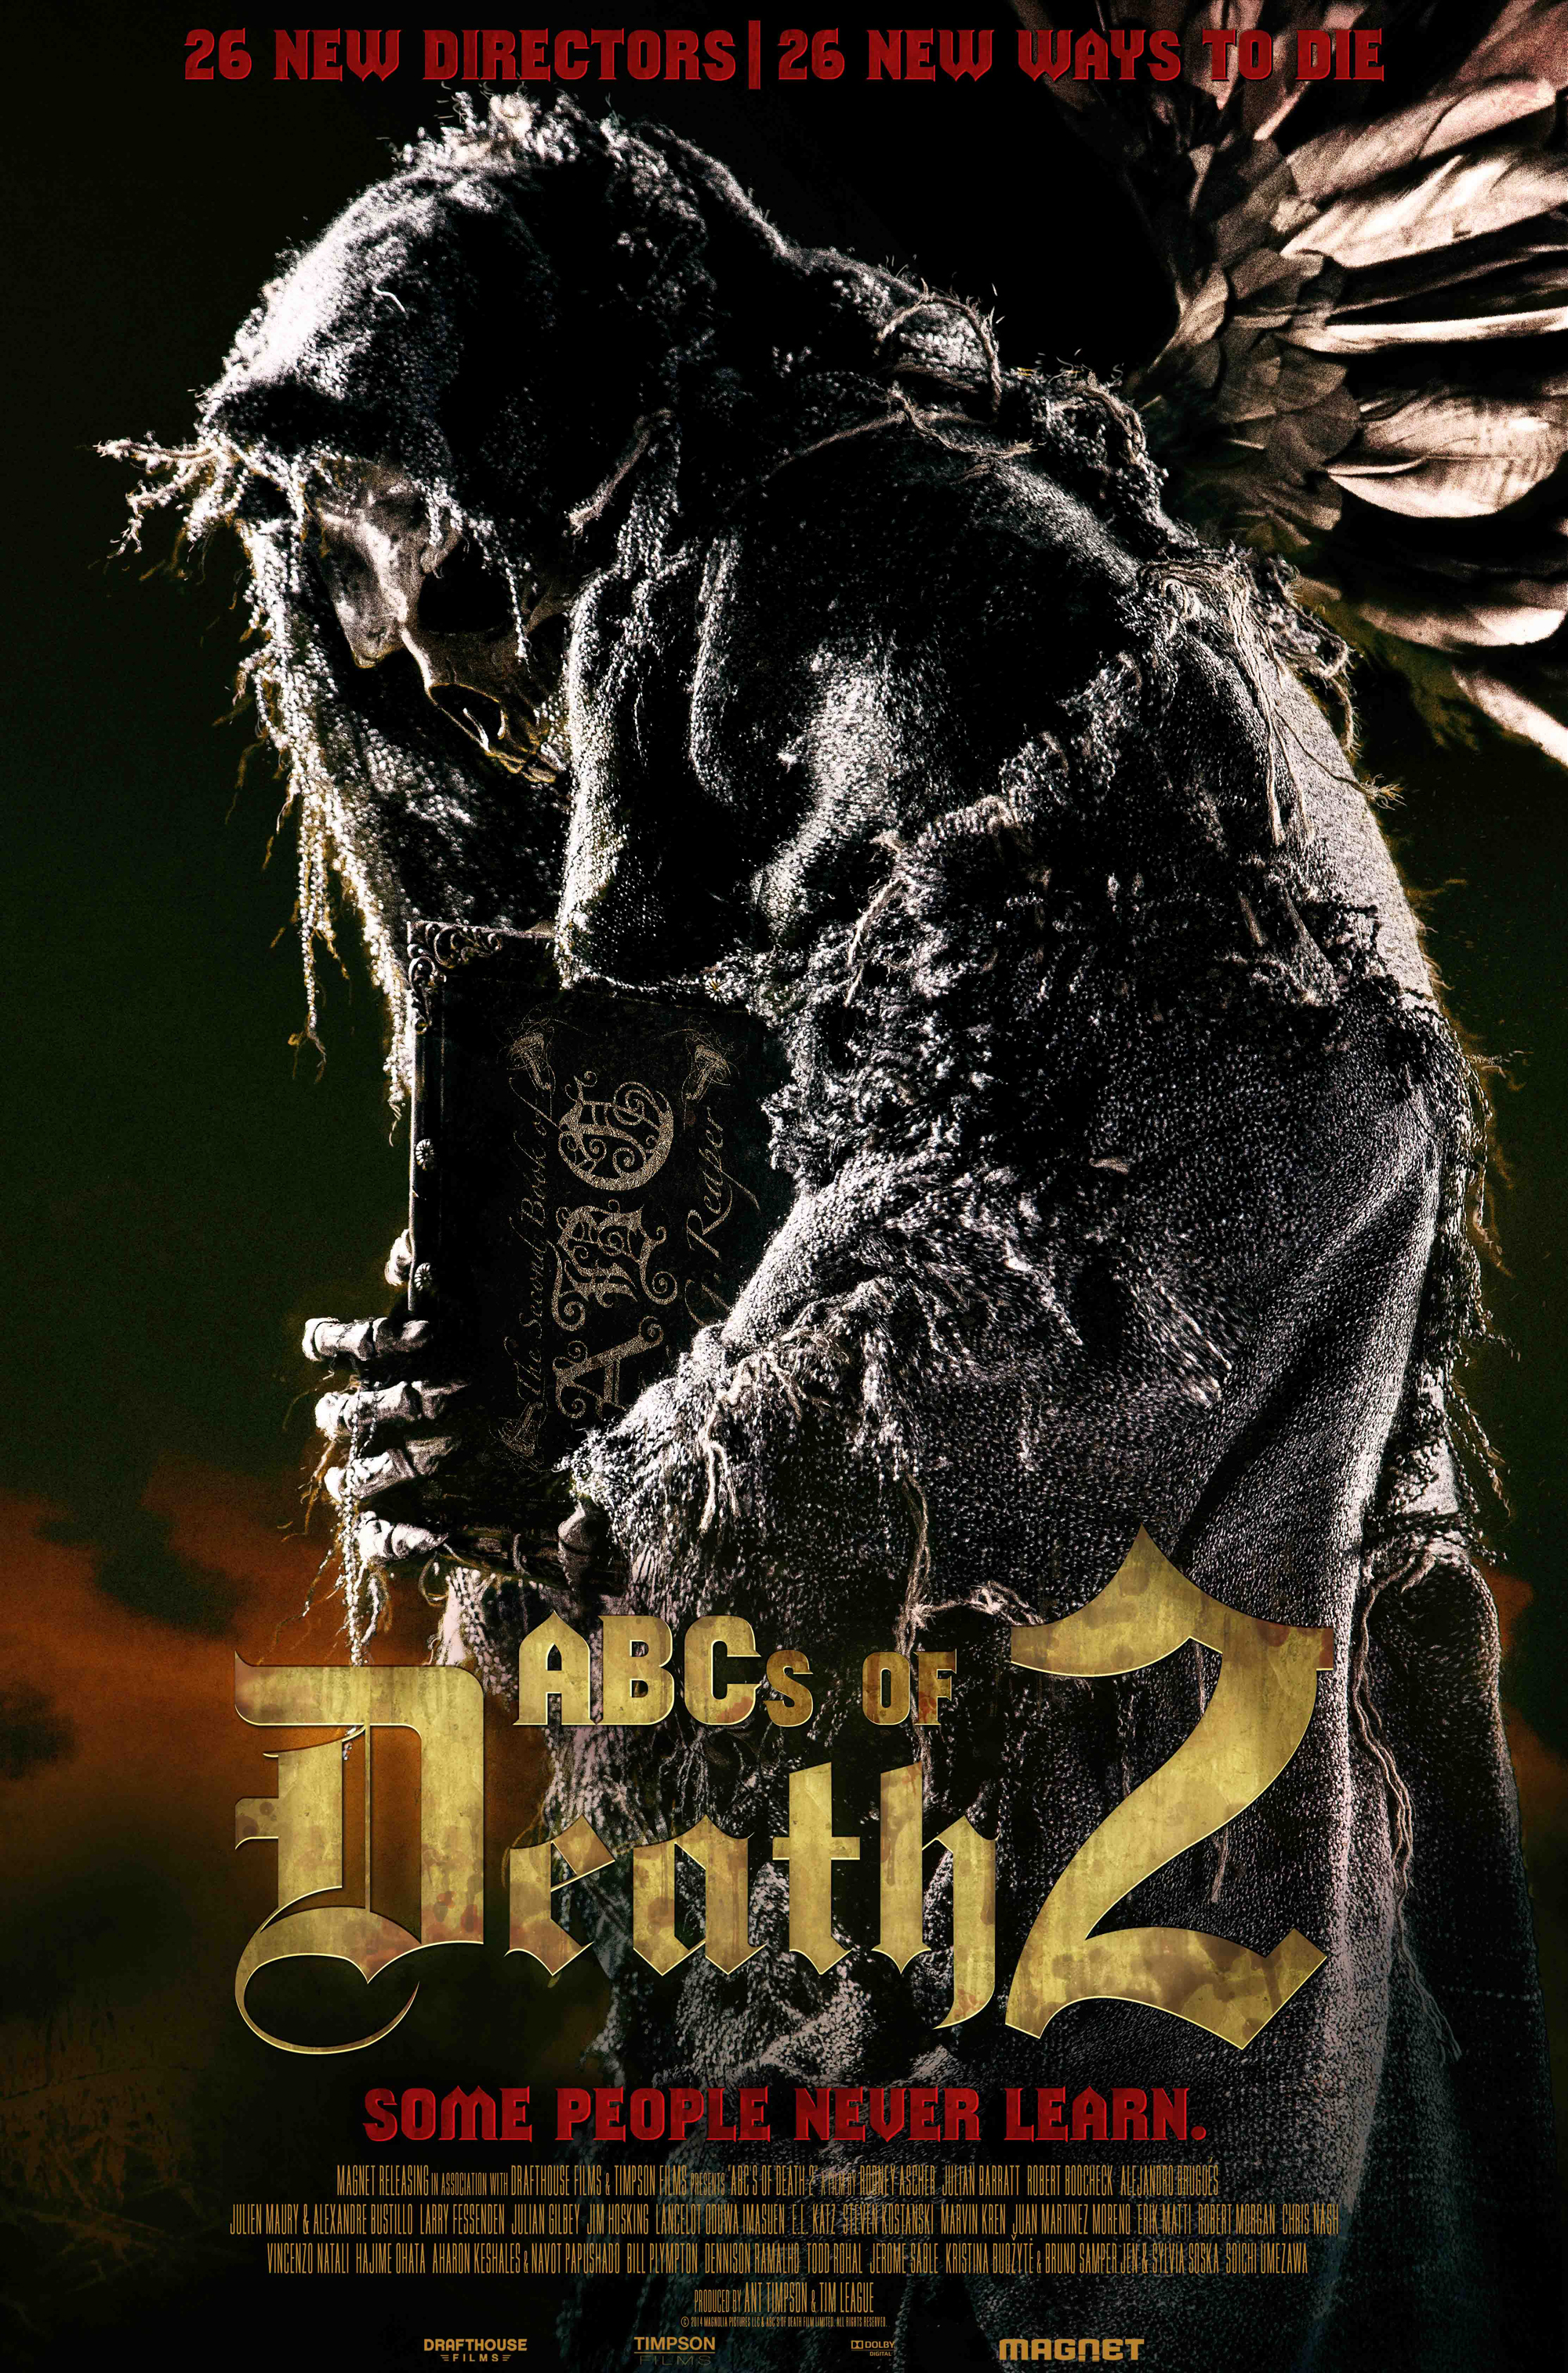 ABCS OF DEATH 2-Official Poster Banner PROMO-03SETEMBRO2014-02